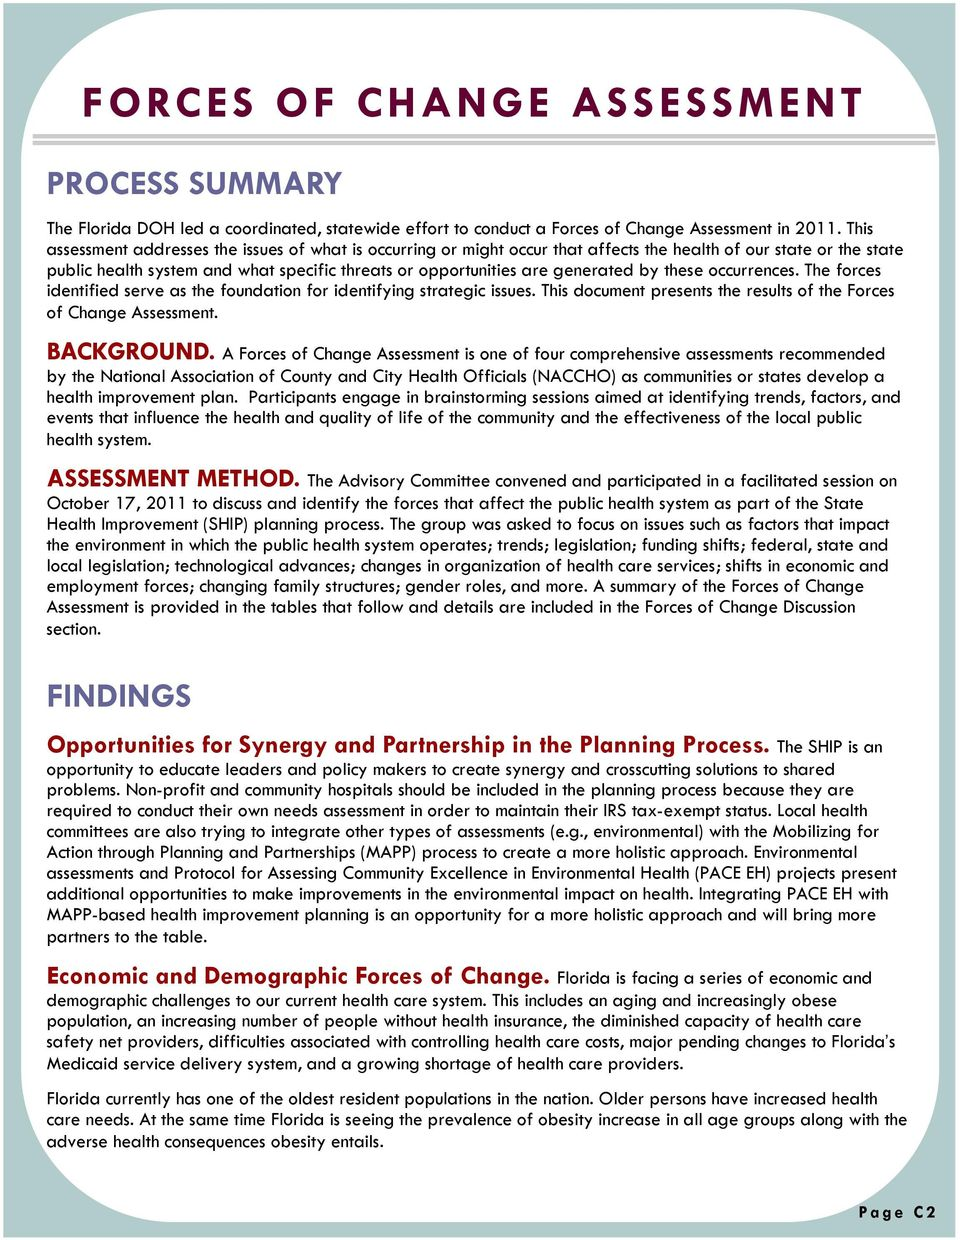 generated by these occurrences. The forces identified serve as the foundation for identifying strategic issues. This document presents the results of the Forces of Change Assessment. BACKGROUND.